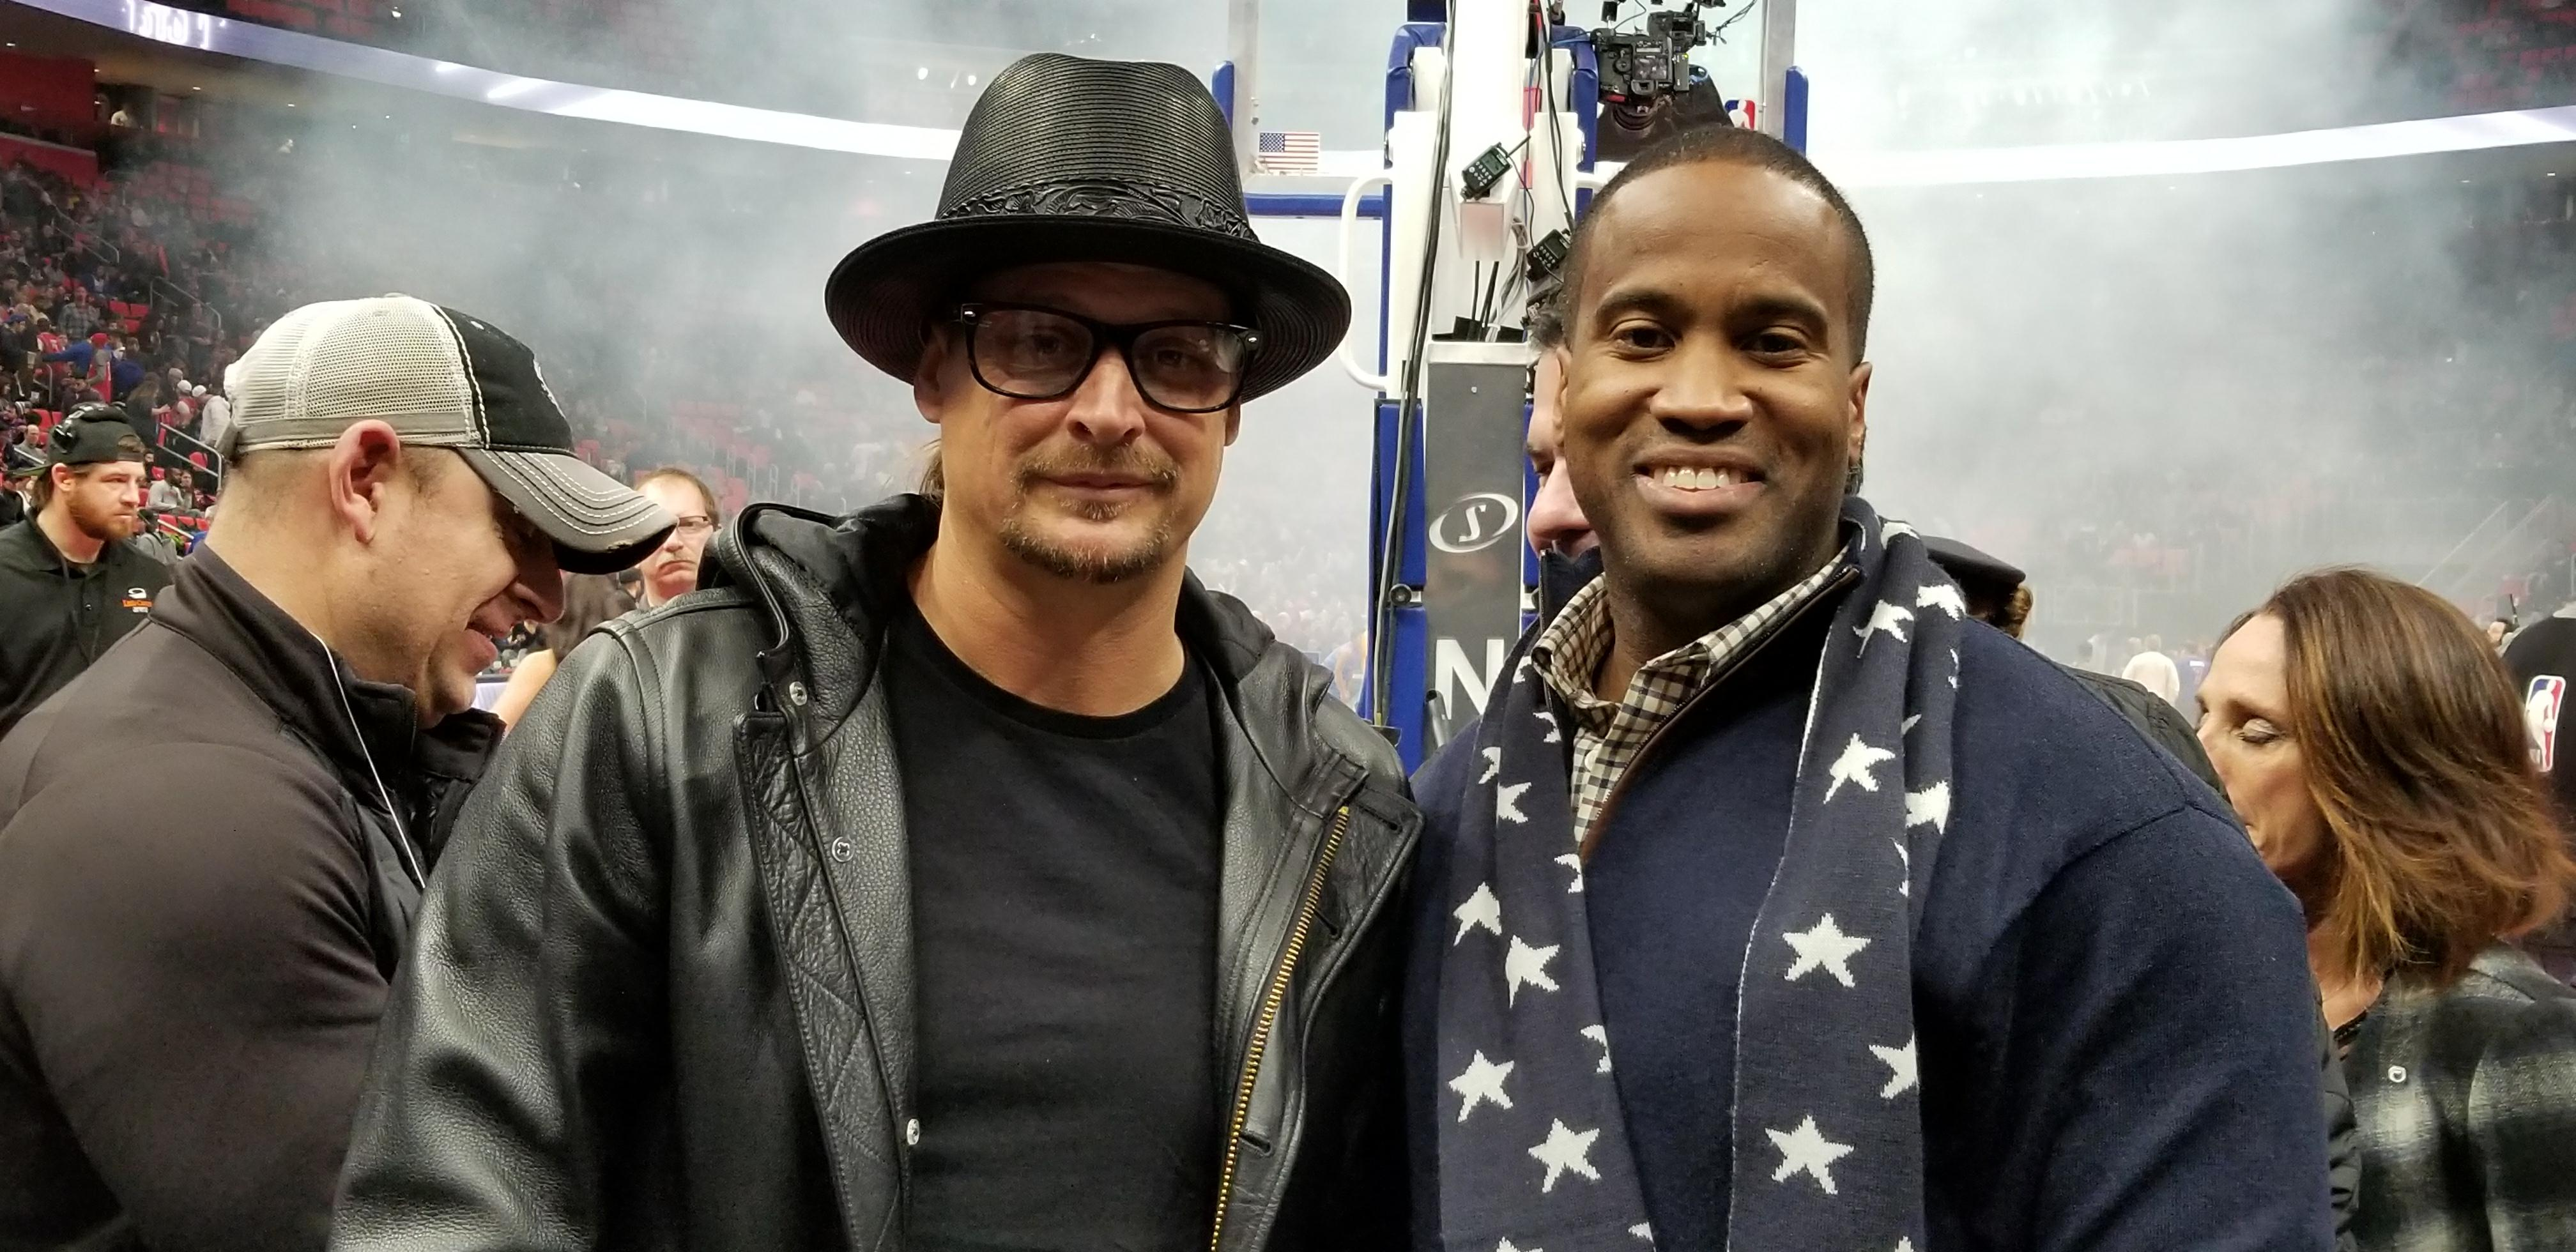 John James Kid Rock/Photo Obtained By The Daily Caller News Foundation